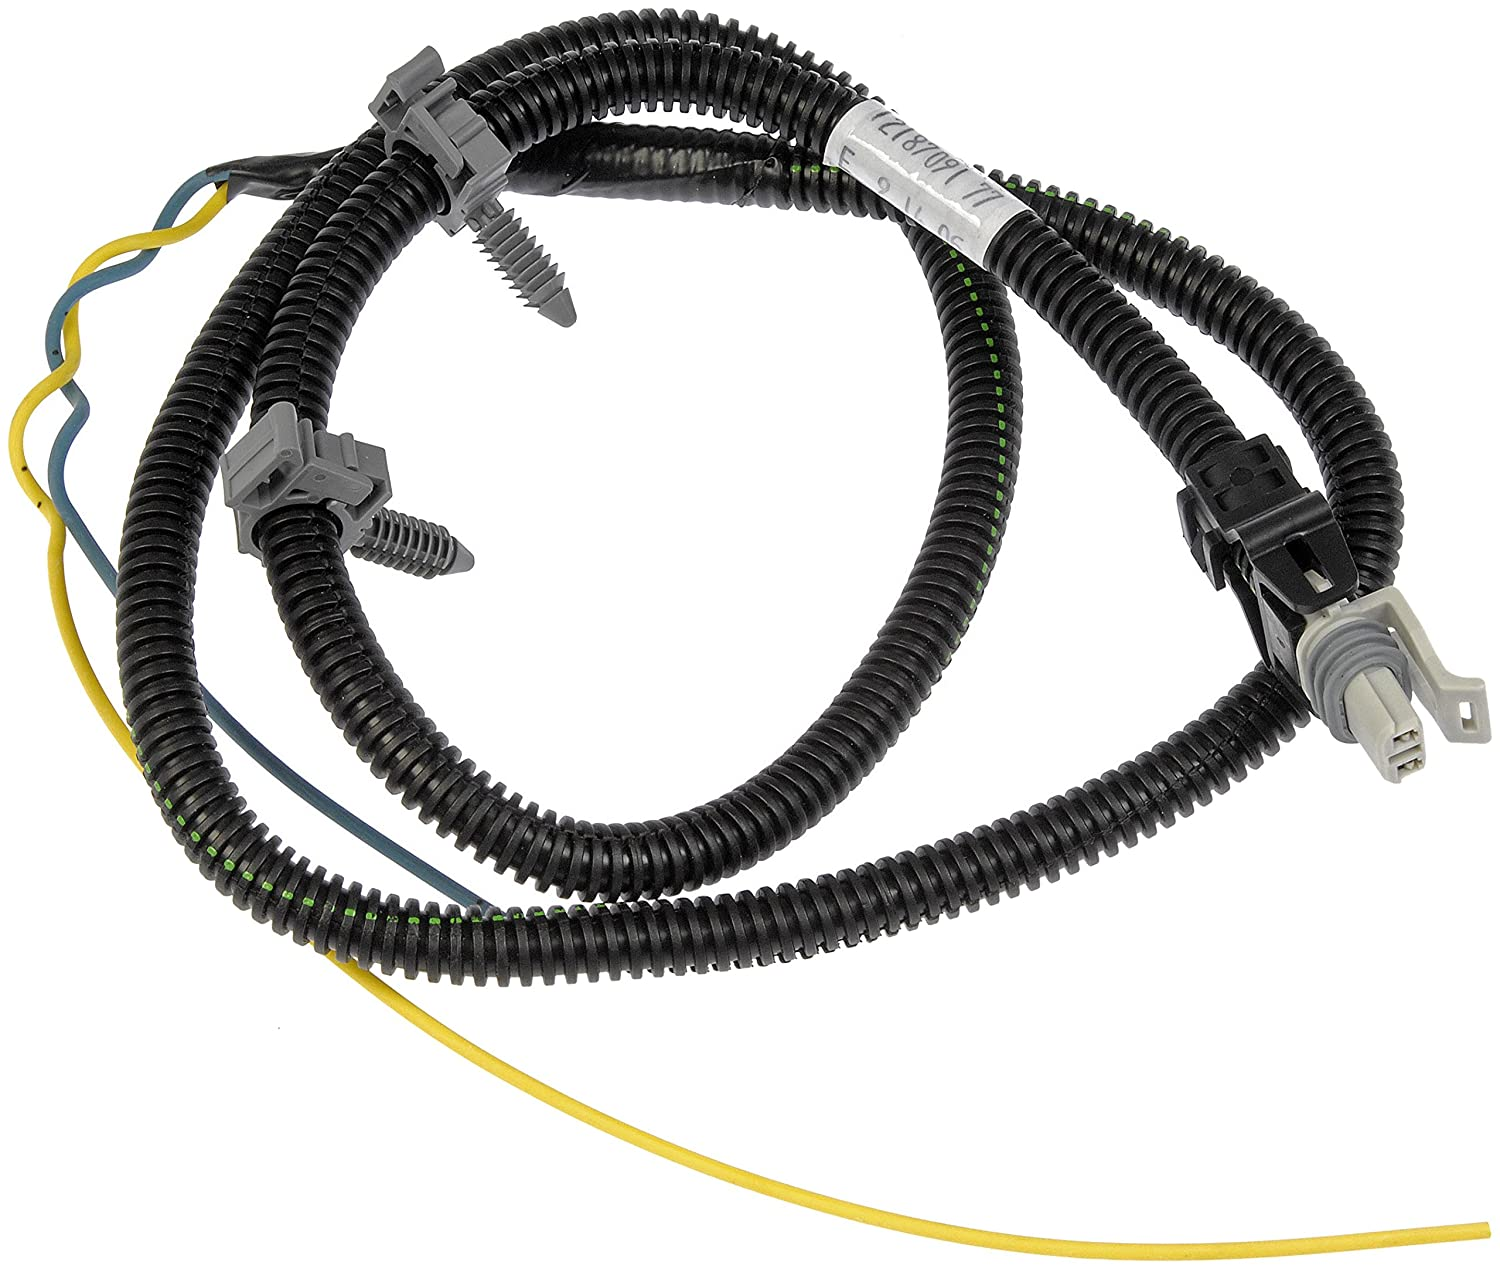 91H9mPlOGsL._SL1500_ amazon com dorman 970 007 wheel speed sensor wiring harness dorman wiring harness at edmiracle.co